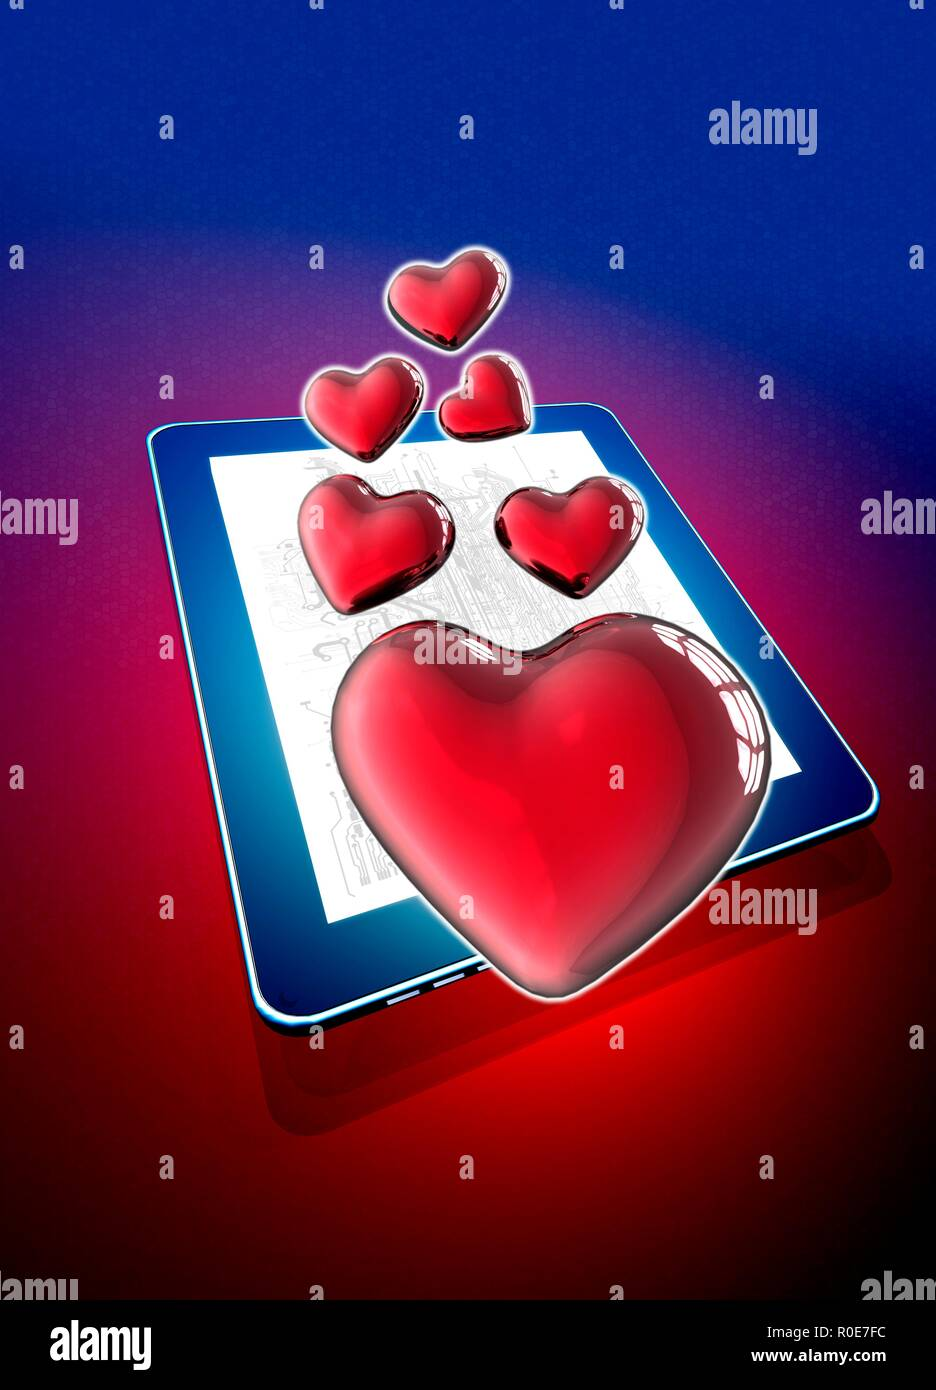 Digital tablet with heart shapes, illustration. - Stock Image